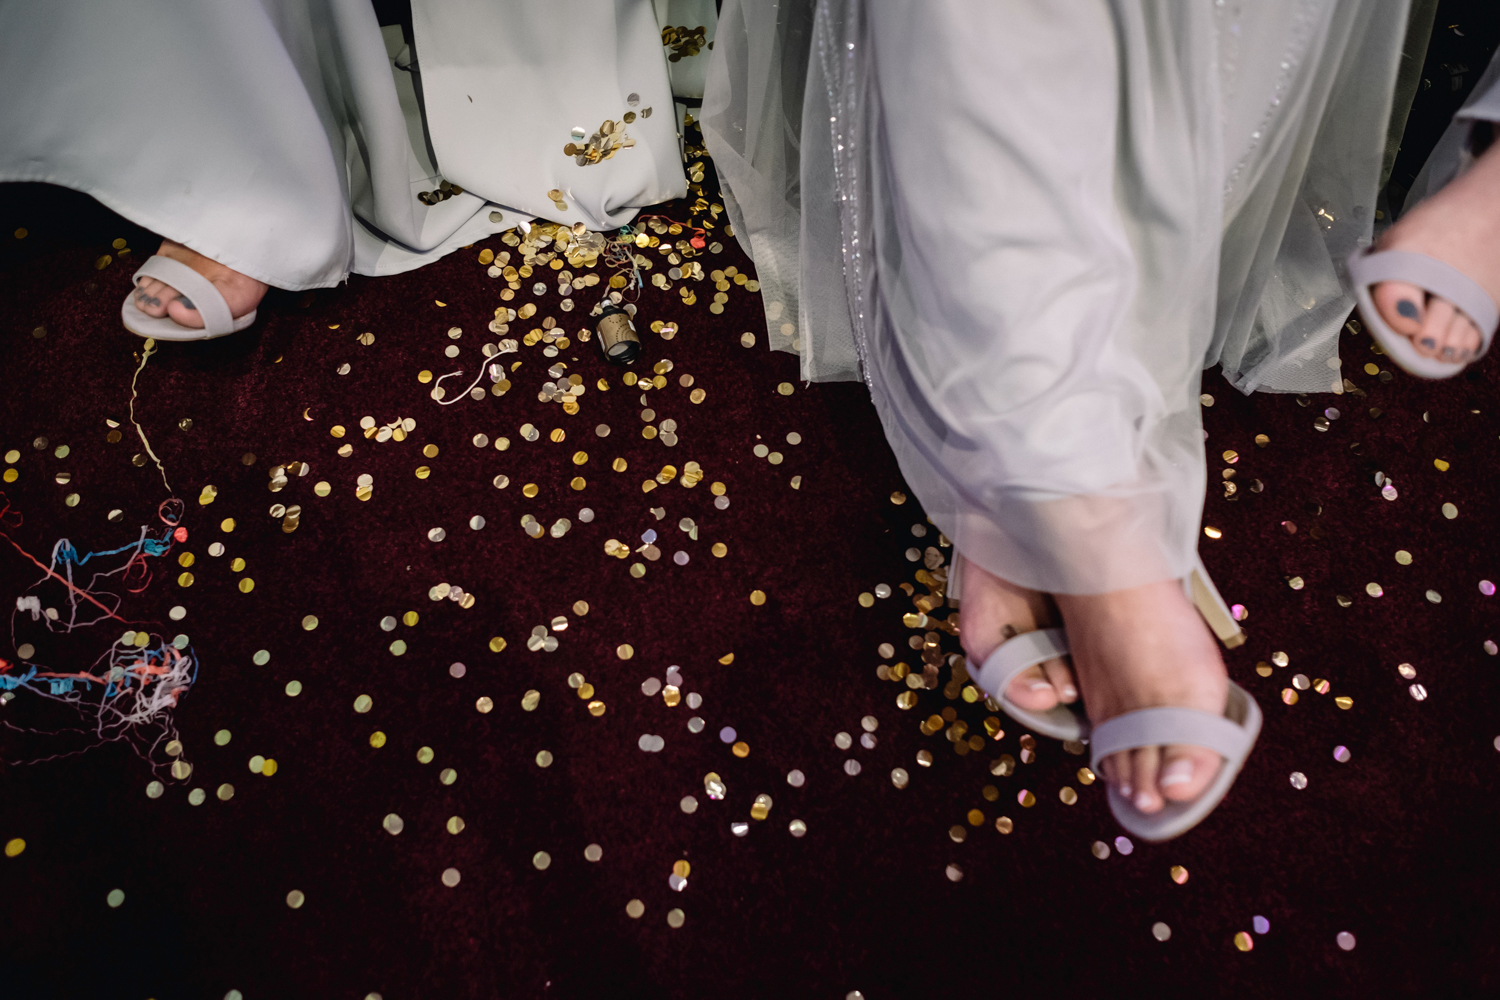 Bridemaids feet and their lavender dresses contrast against a dark red carpet and gold confetti.